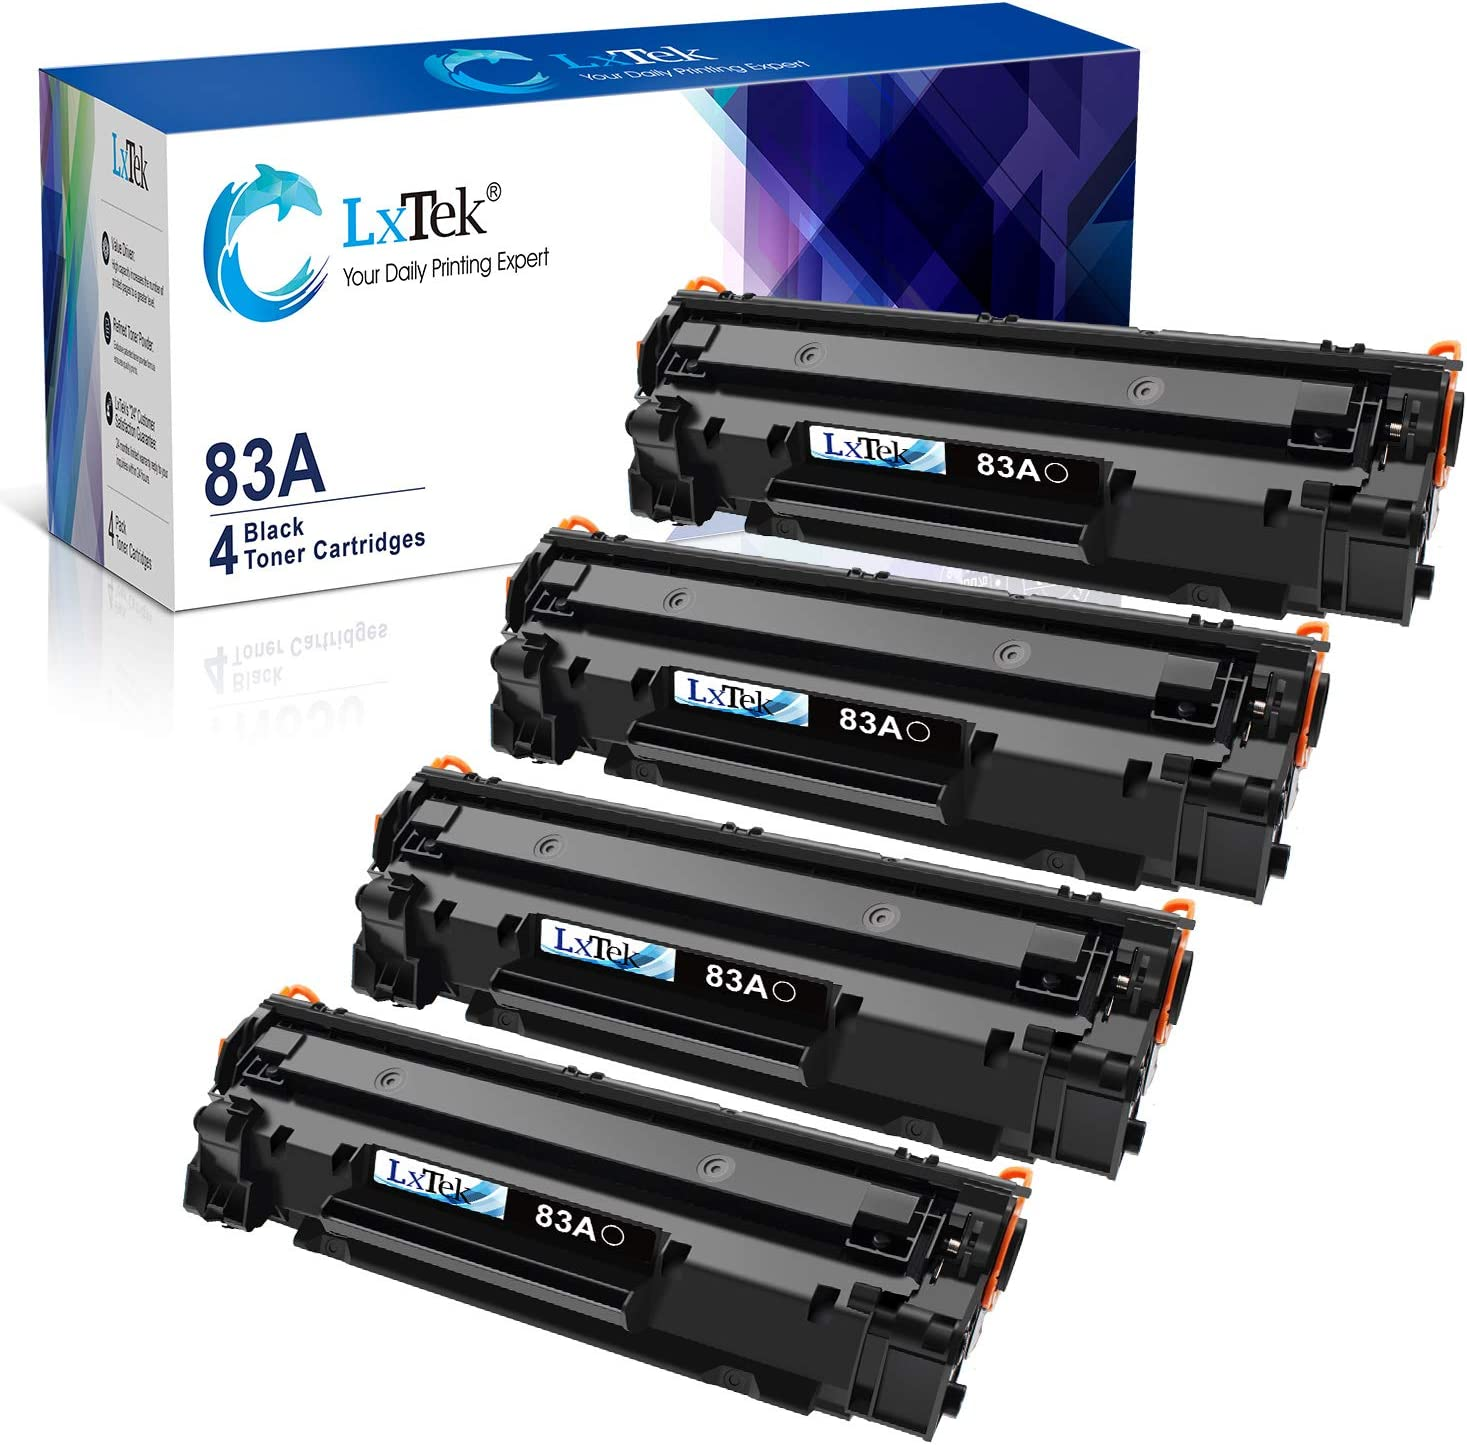 LxTek Compatible Toner Cartridge Replacement for HP 83A CF283A to use with Laserjet Pro MFP M125nw M201dw M225dw M201n M125a M127fn M127fw, 4 Black